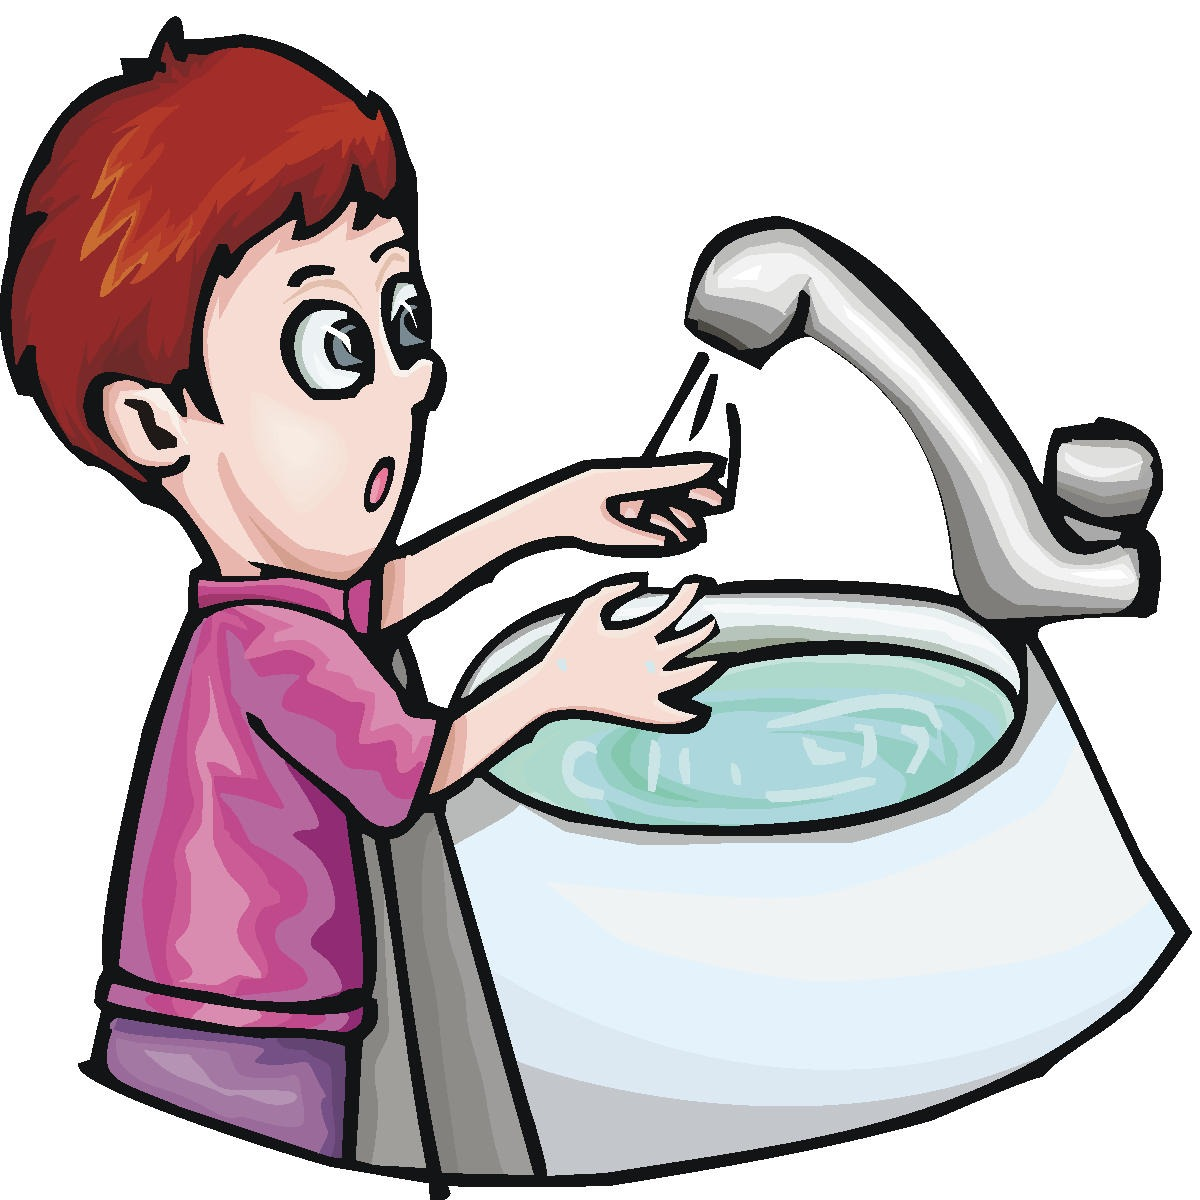 Washing hands clipart small png freeuse Free Ocd Cliparts, Download Free Clip Art, Free Clip Art on Clipart ... png freeuse